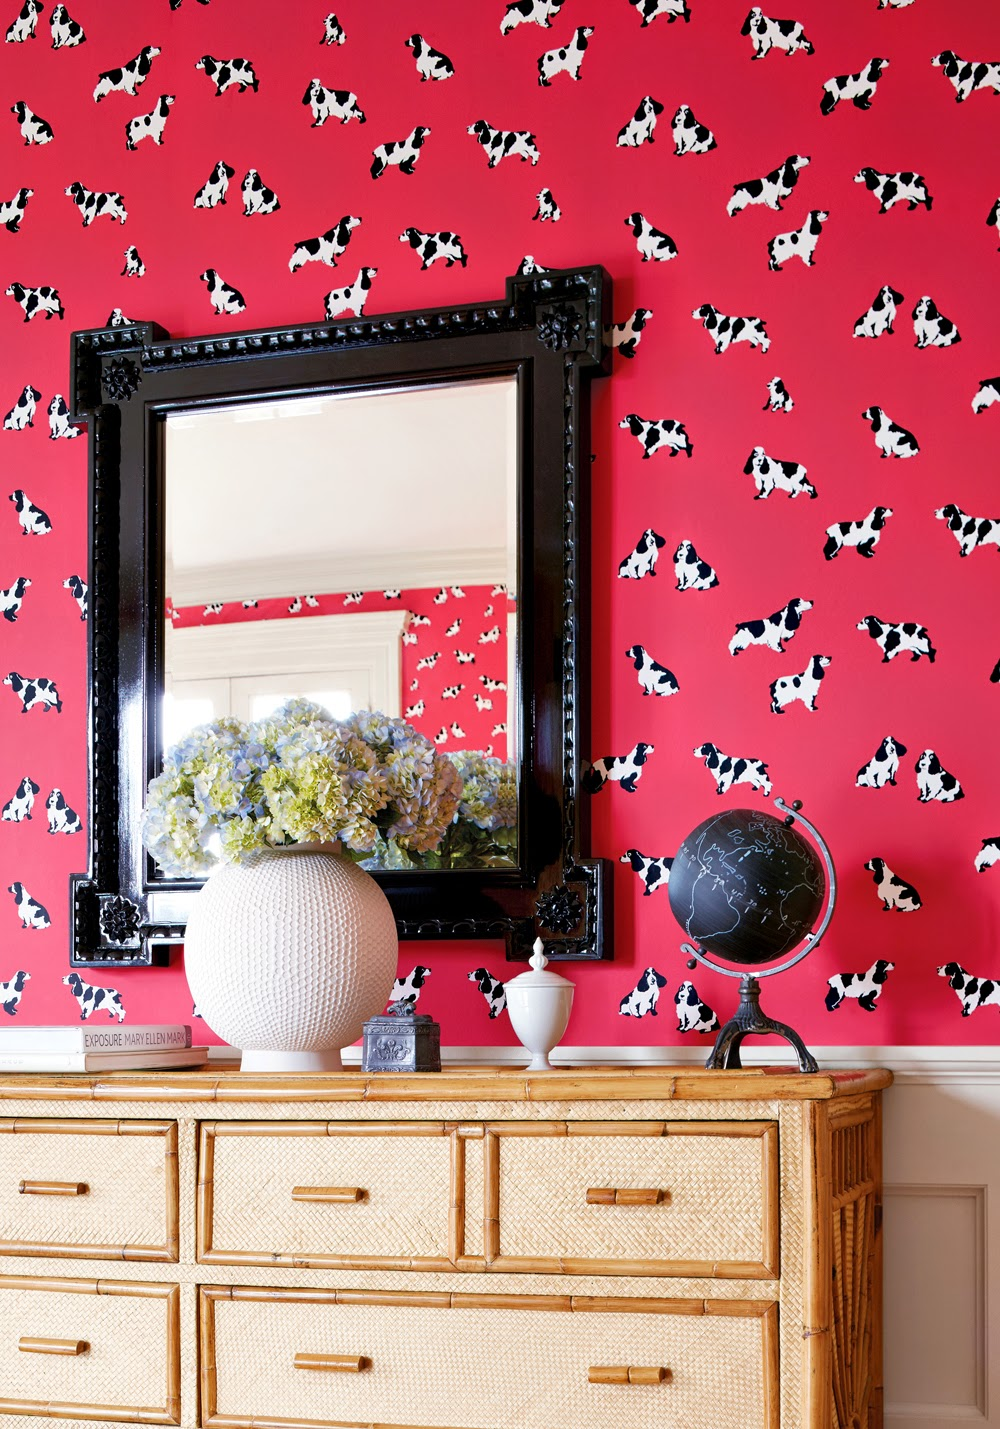 http://www.thibautdesign.com/collection/high_res.php?patternID=1531&productID=10748